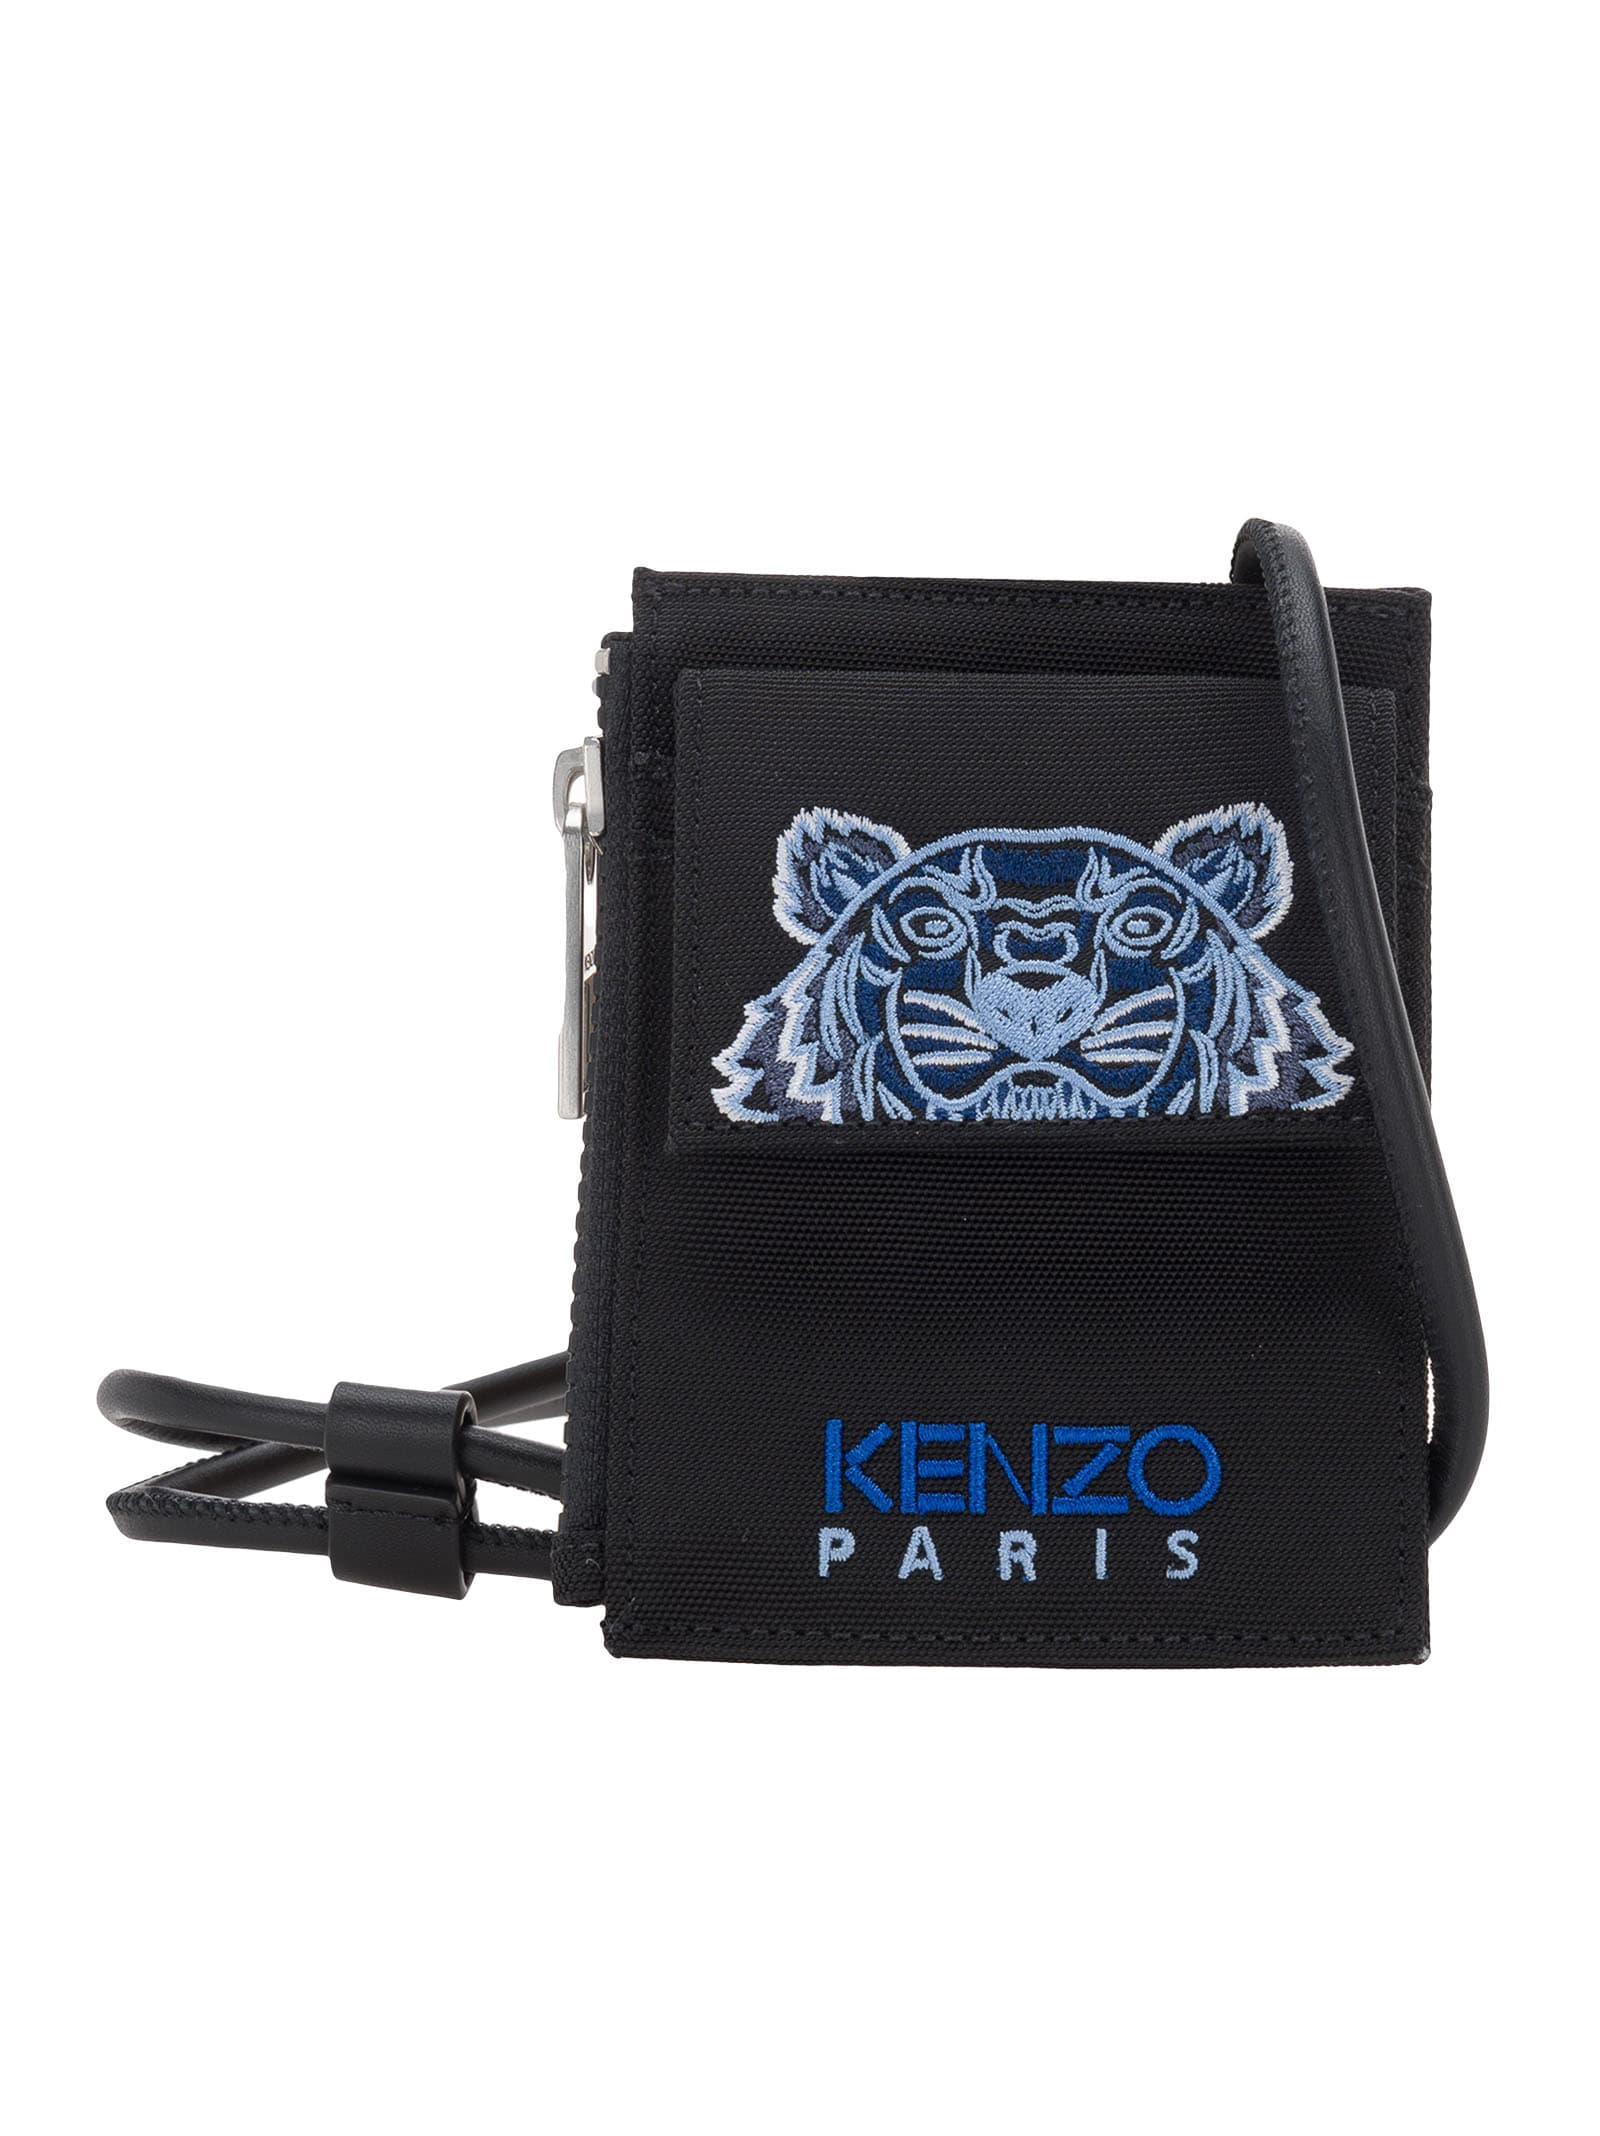 Kenzo Cardholders CANVAS KAMPUS TIGER CARD HOLDER WITH LONG STRAP